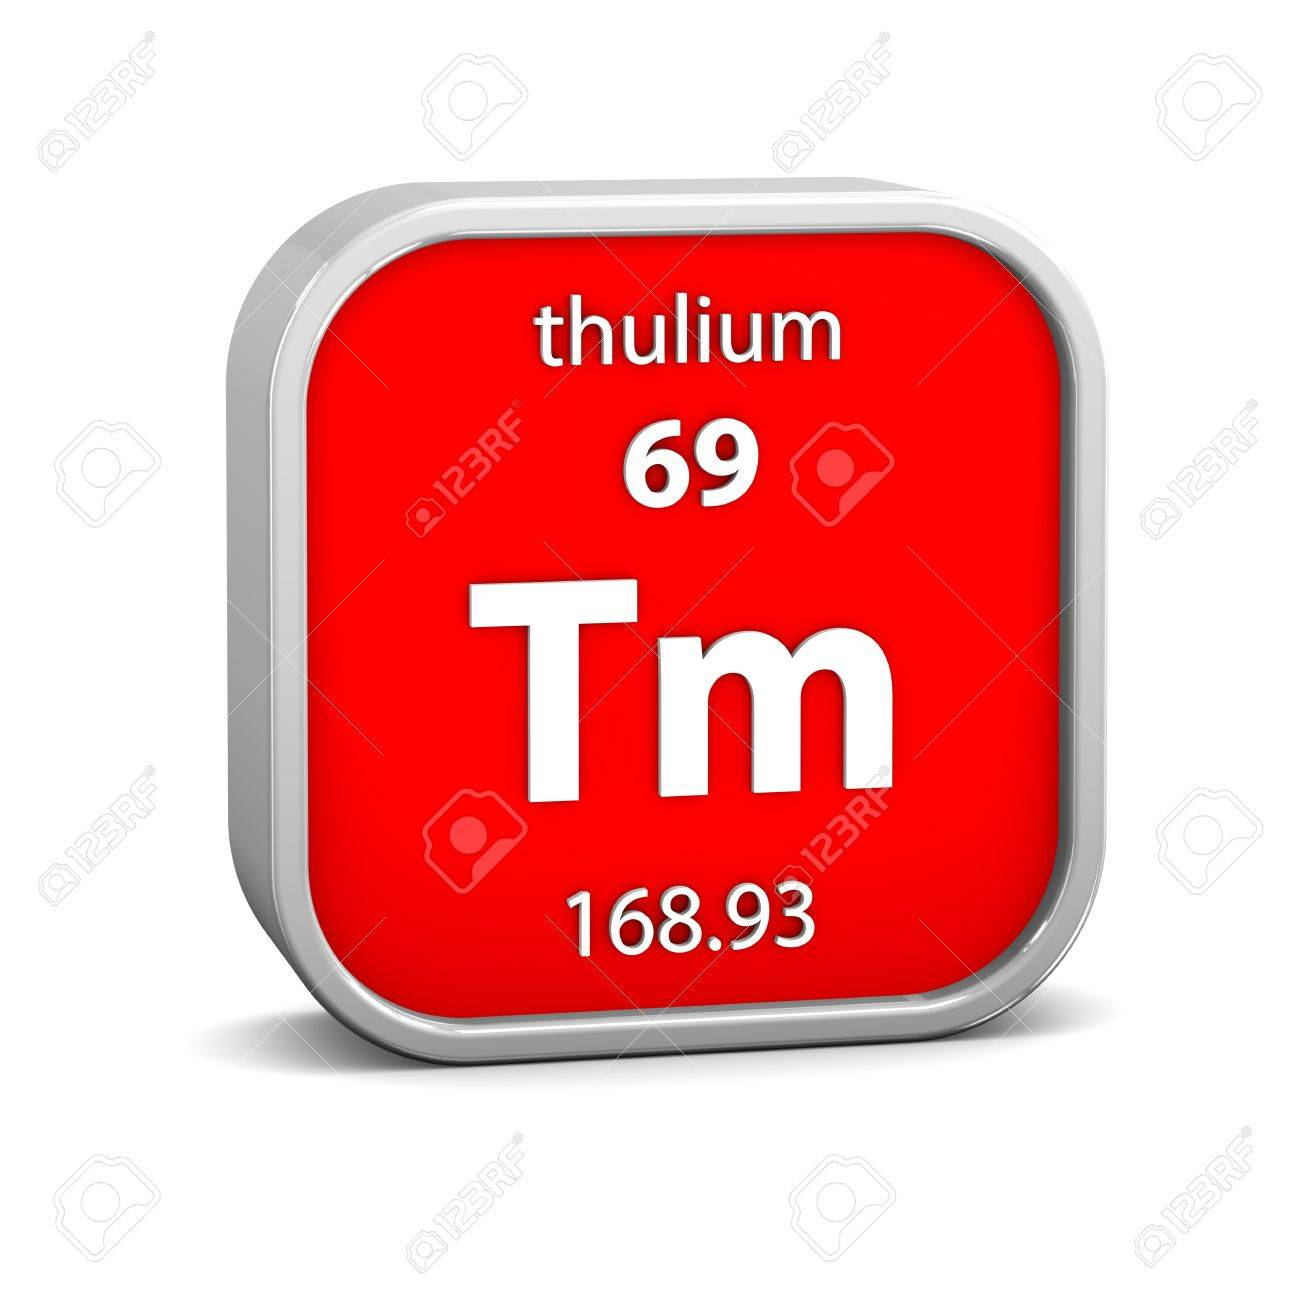 Thulium periodic table choice image periodic table images thulium periodic table images periodic table images thulium periodic table gallery periodic table images thulium material gamestrikefo Gallery